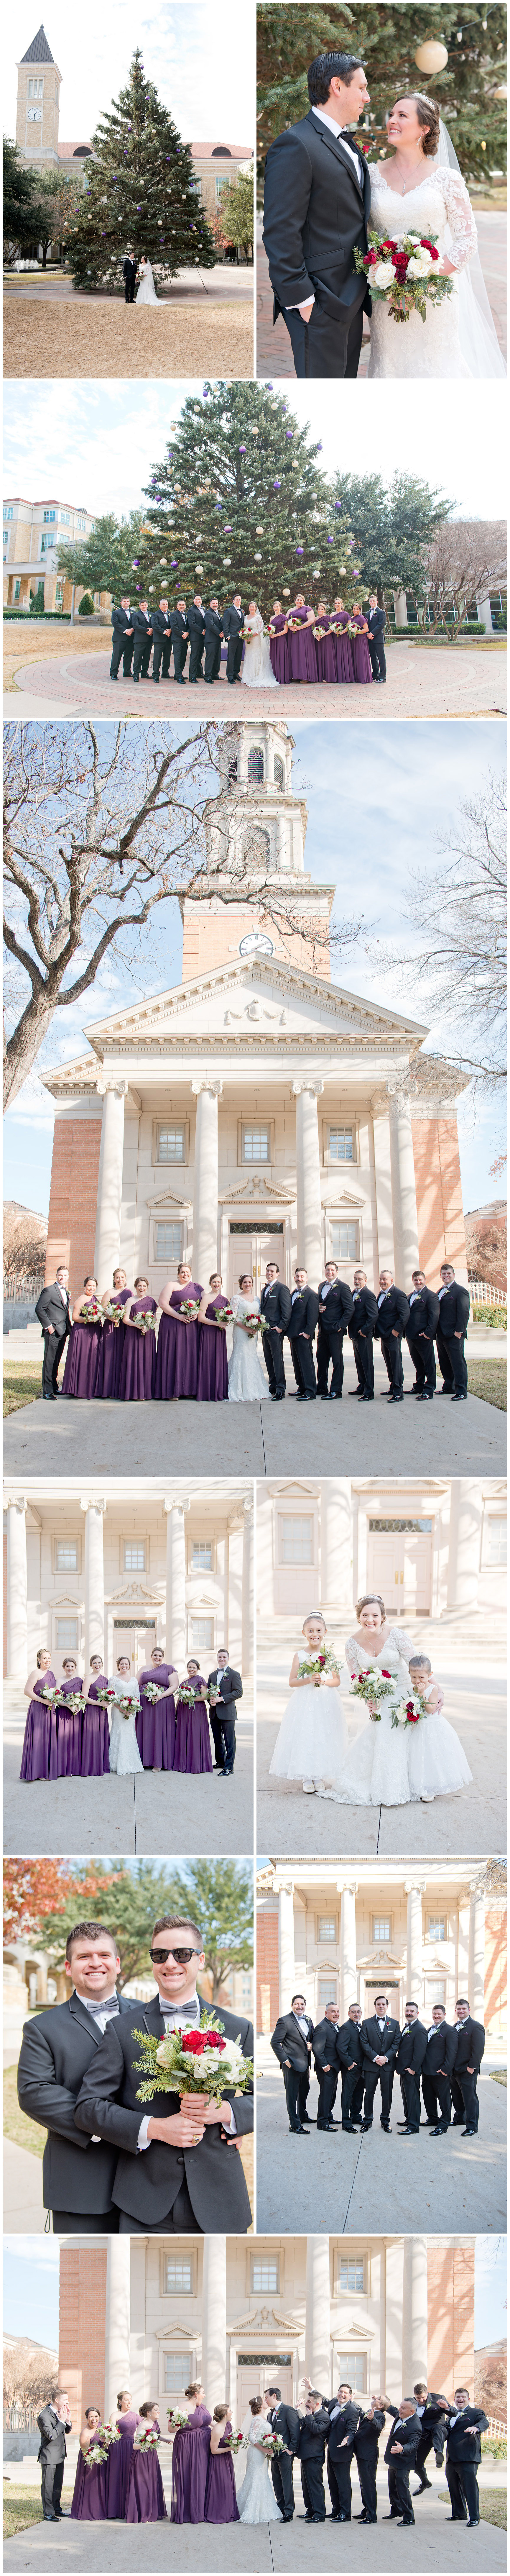 TCU Christmas Tree Bridal Party Portraits